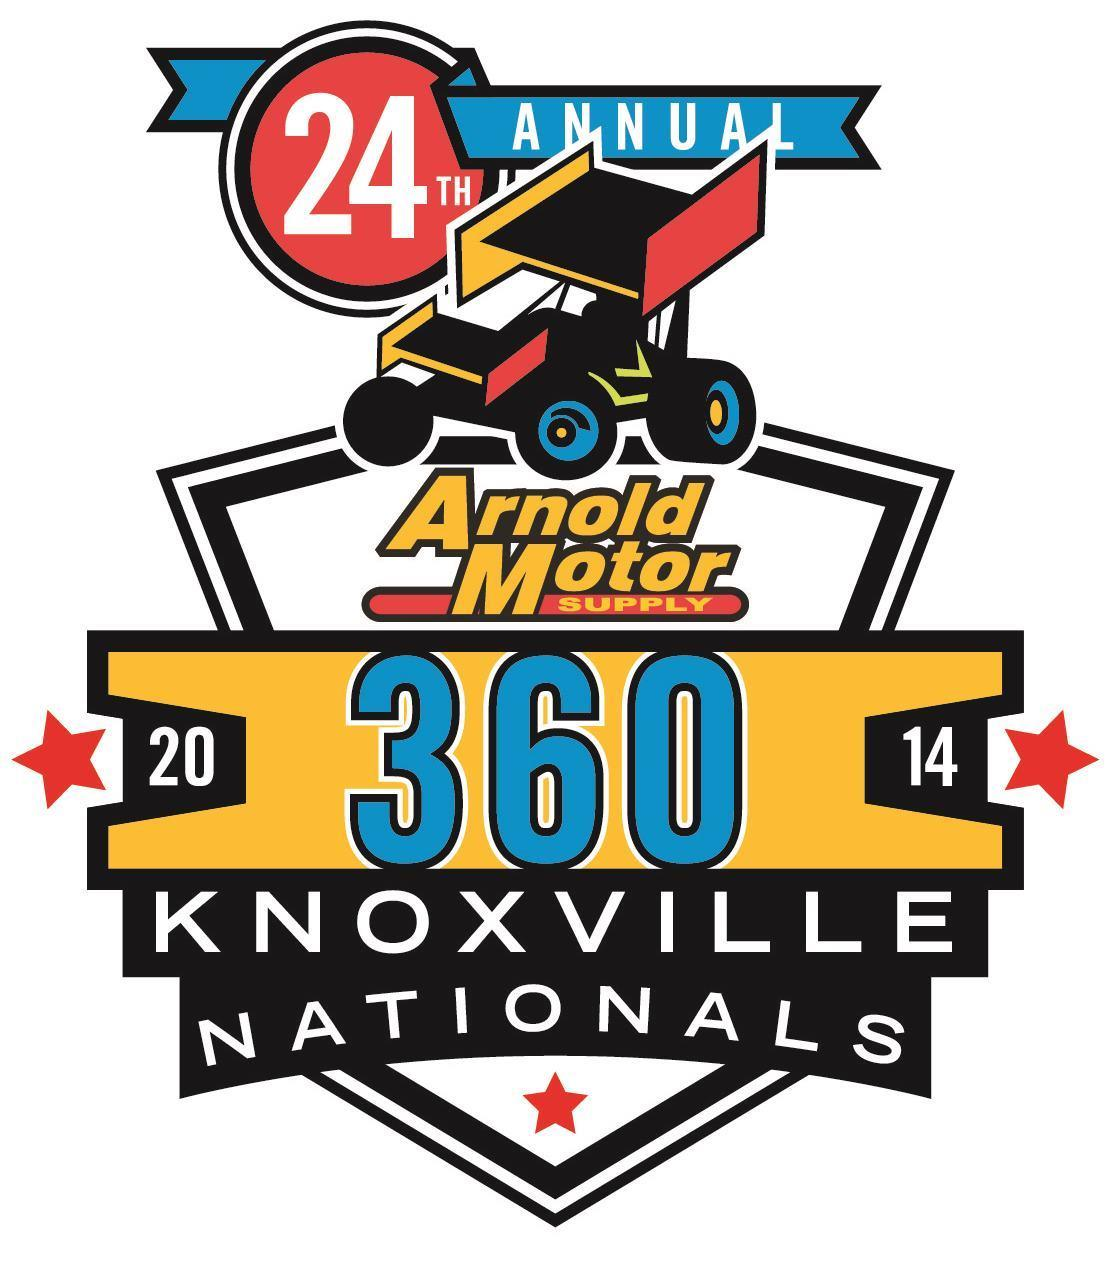 25th Annual Arnold Motor Supply 360 Nationals